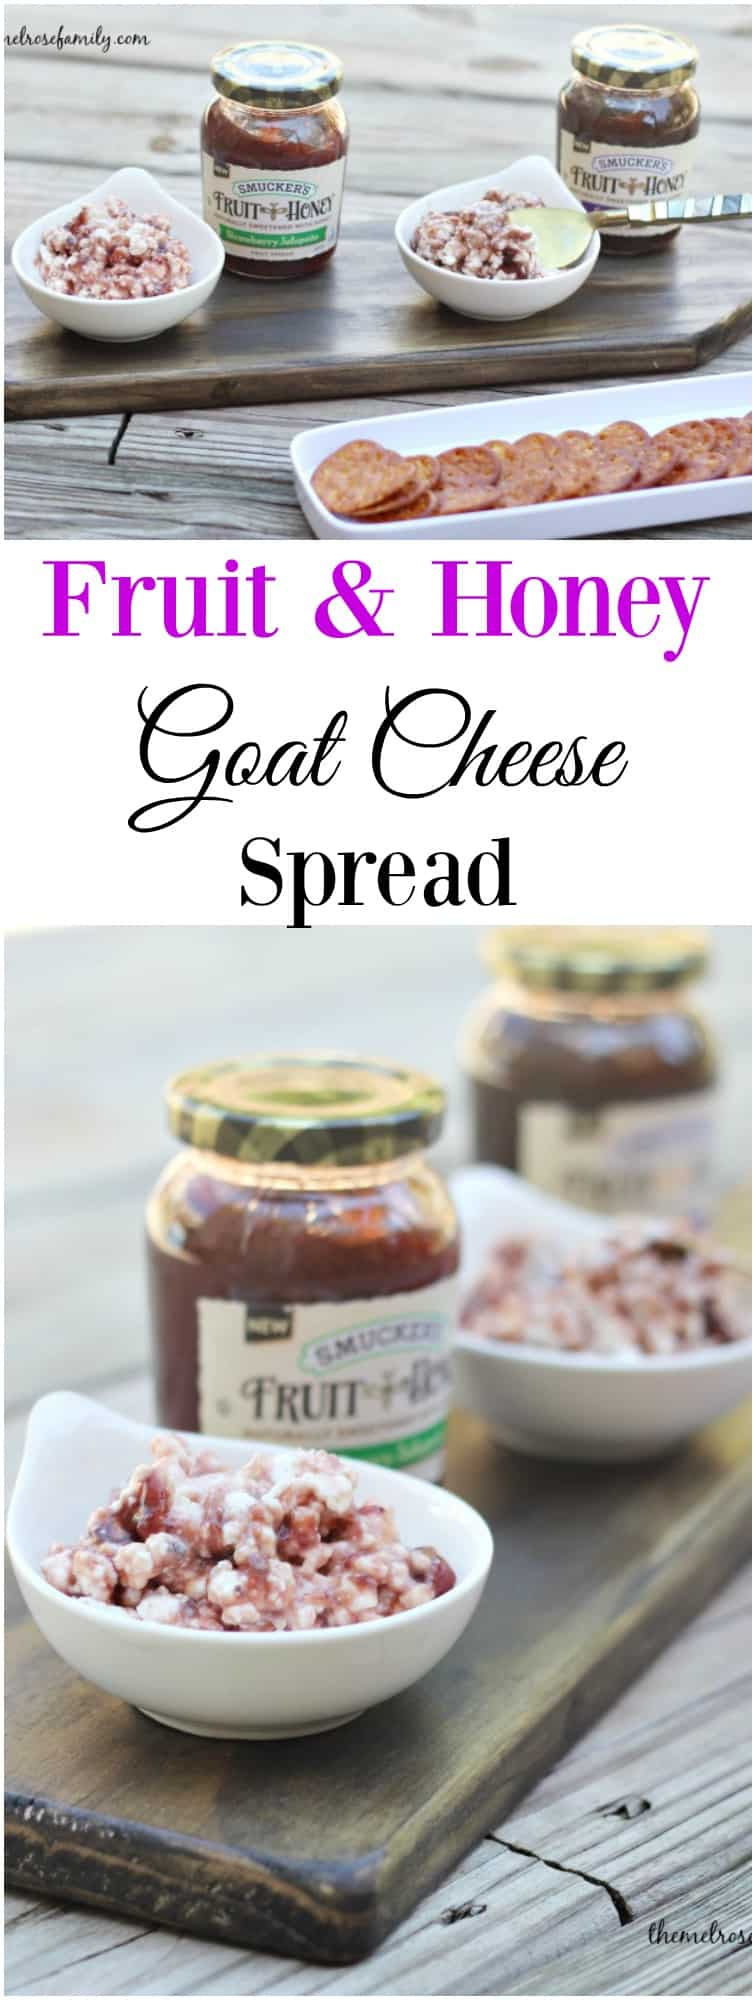 In need of a flavorful and easy appetizer to impress your guests? This Fruit & Honey Goat Cheese Spread comes together quickly and taste amazing!